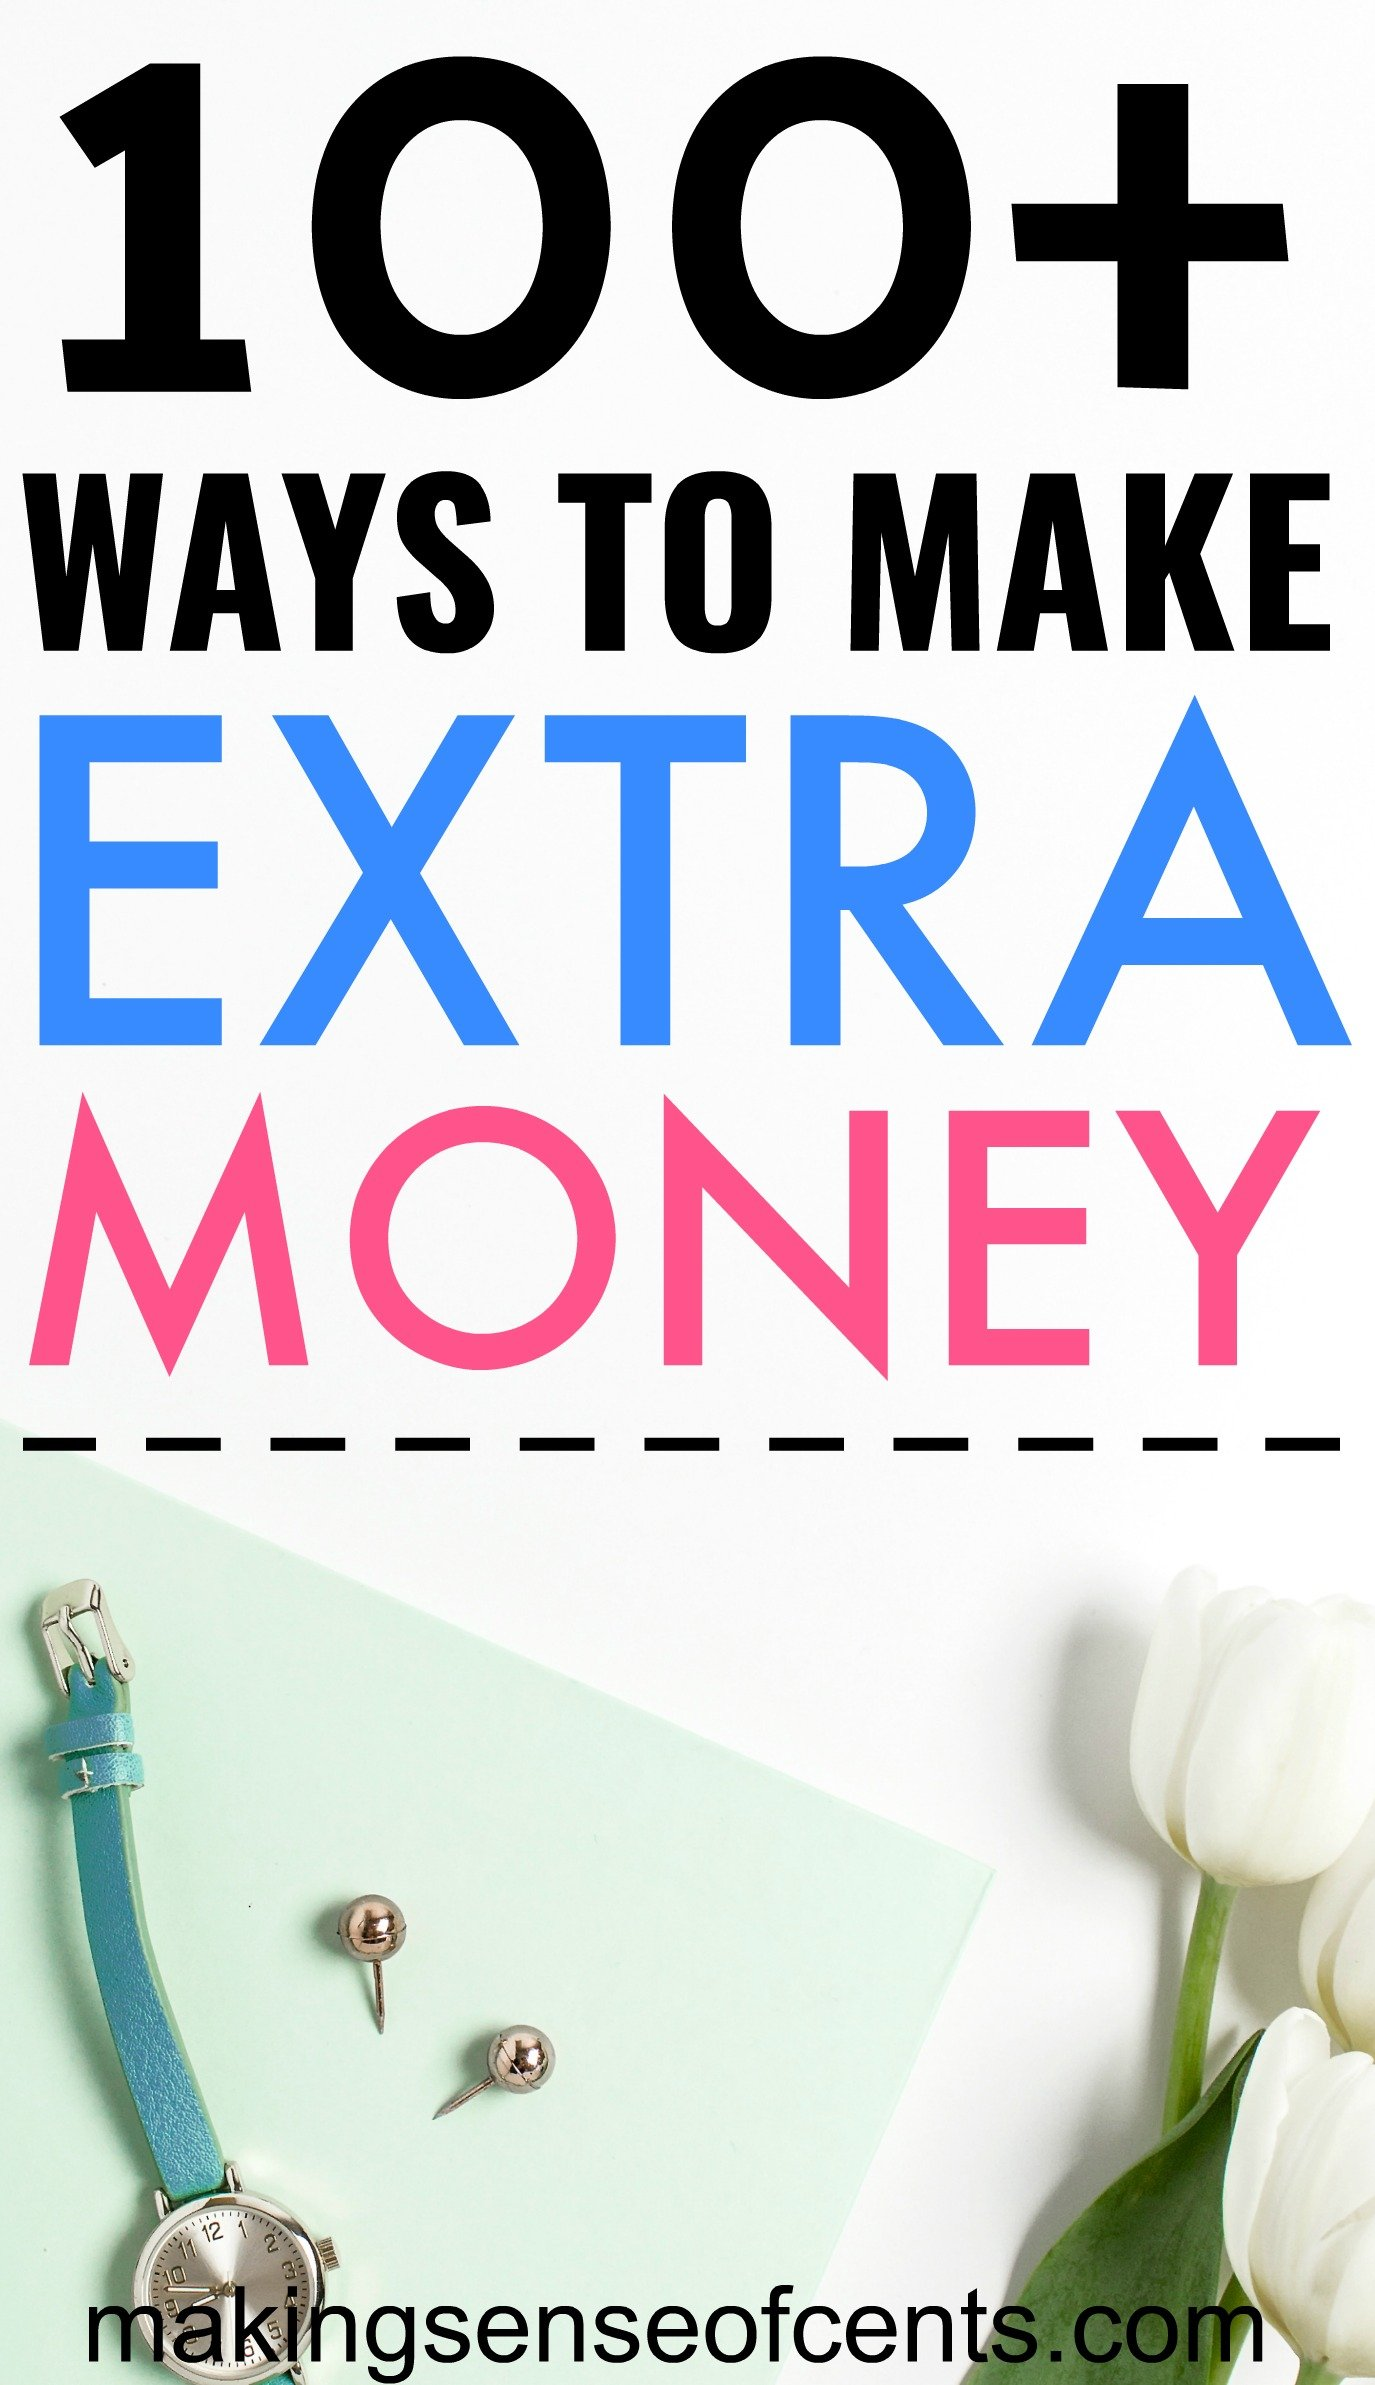 Make Extra Income - Over 100 Ways To Make Extra Money!